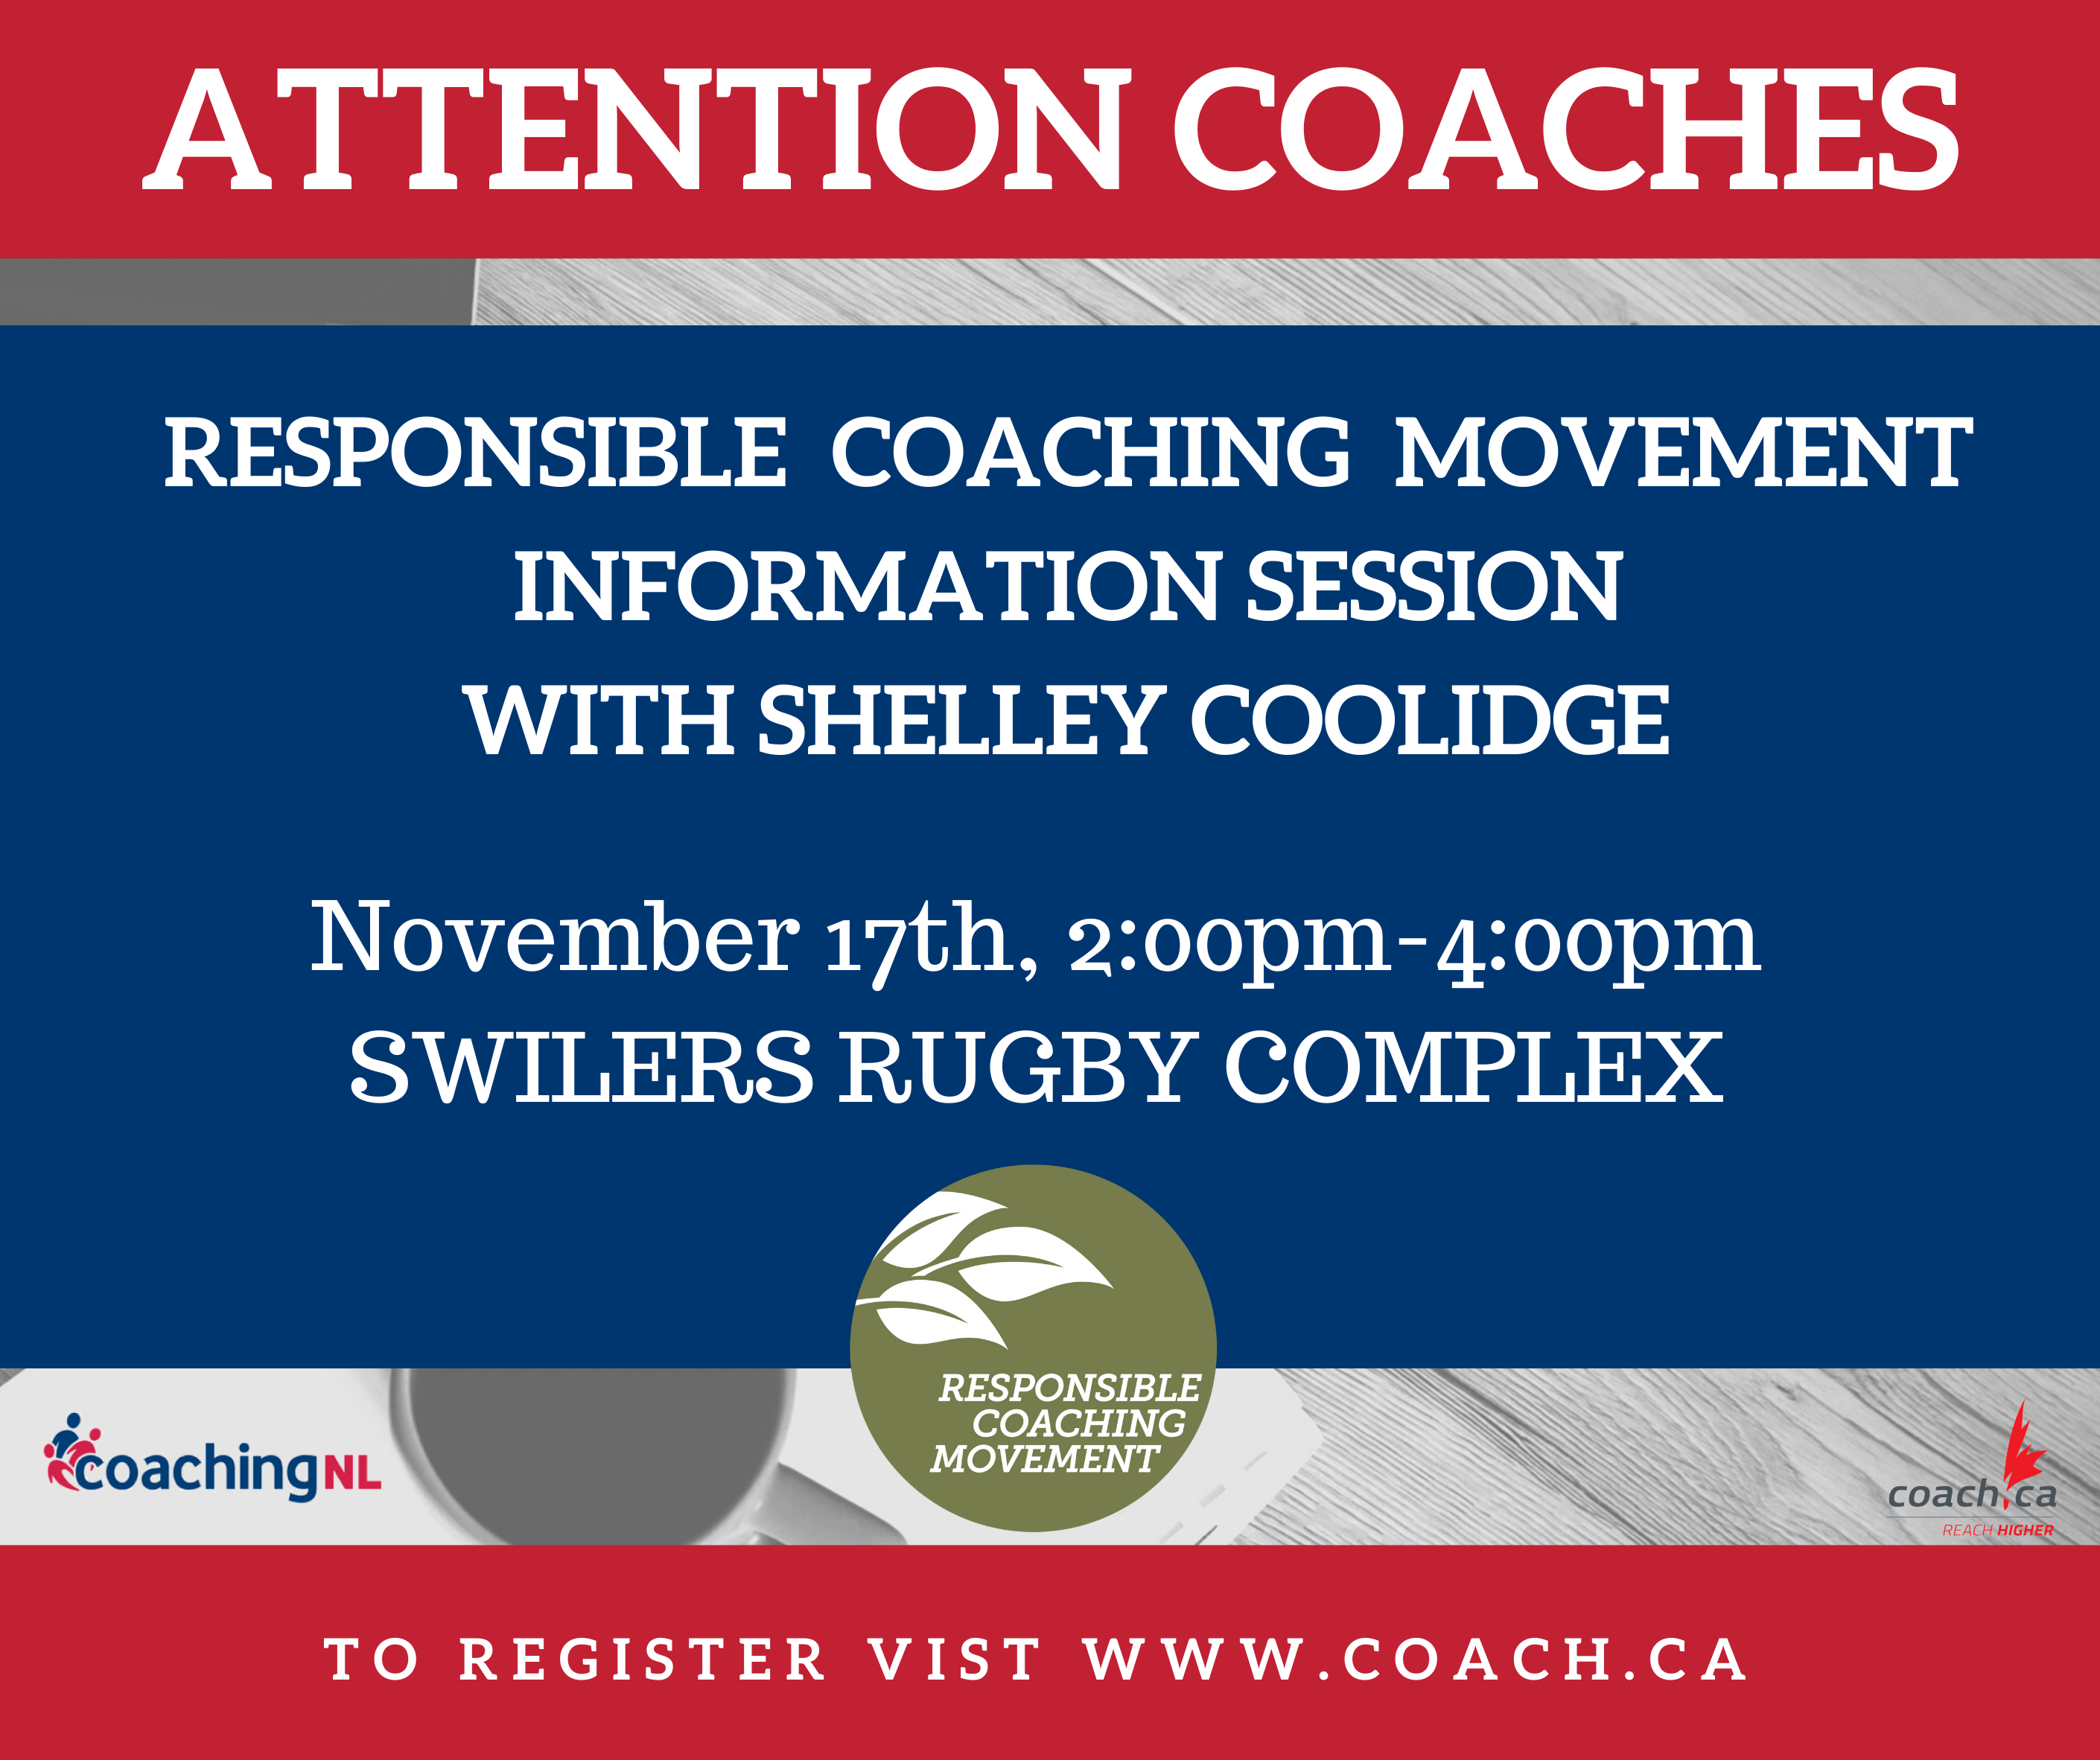 Responsible Coaching Movement Information Session